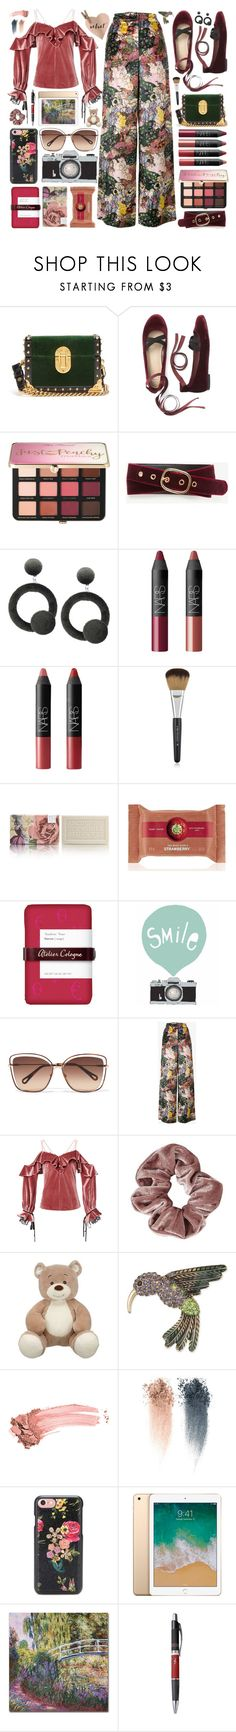 """""""Velvet Touch"""" by sunx2 ❤ liked on Polyvore featuring Prada, Sephora Collection, Ann Taylor, NARS Cosmetics, TokyoMilk, Atelier Cologne, Seventy Tree, Chloé, Erdem and self-portrait"""